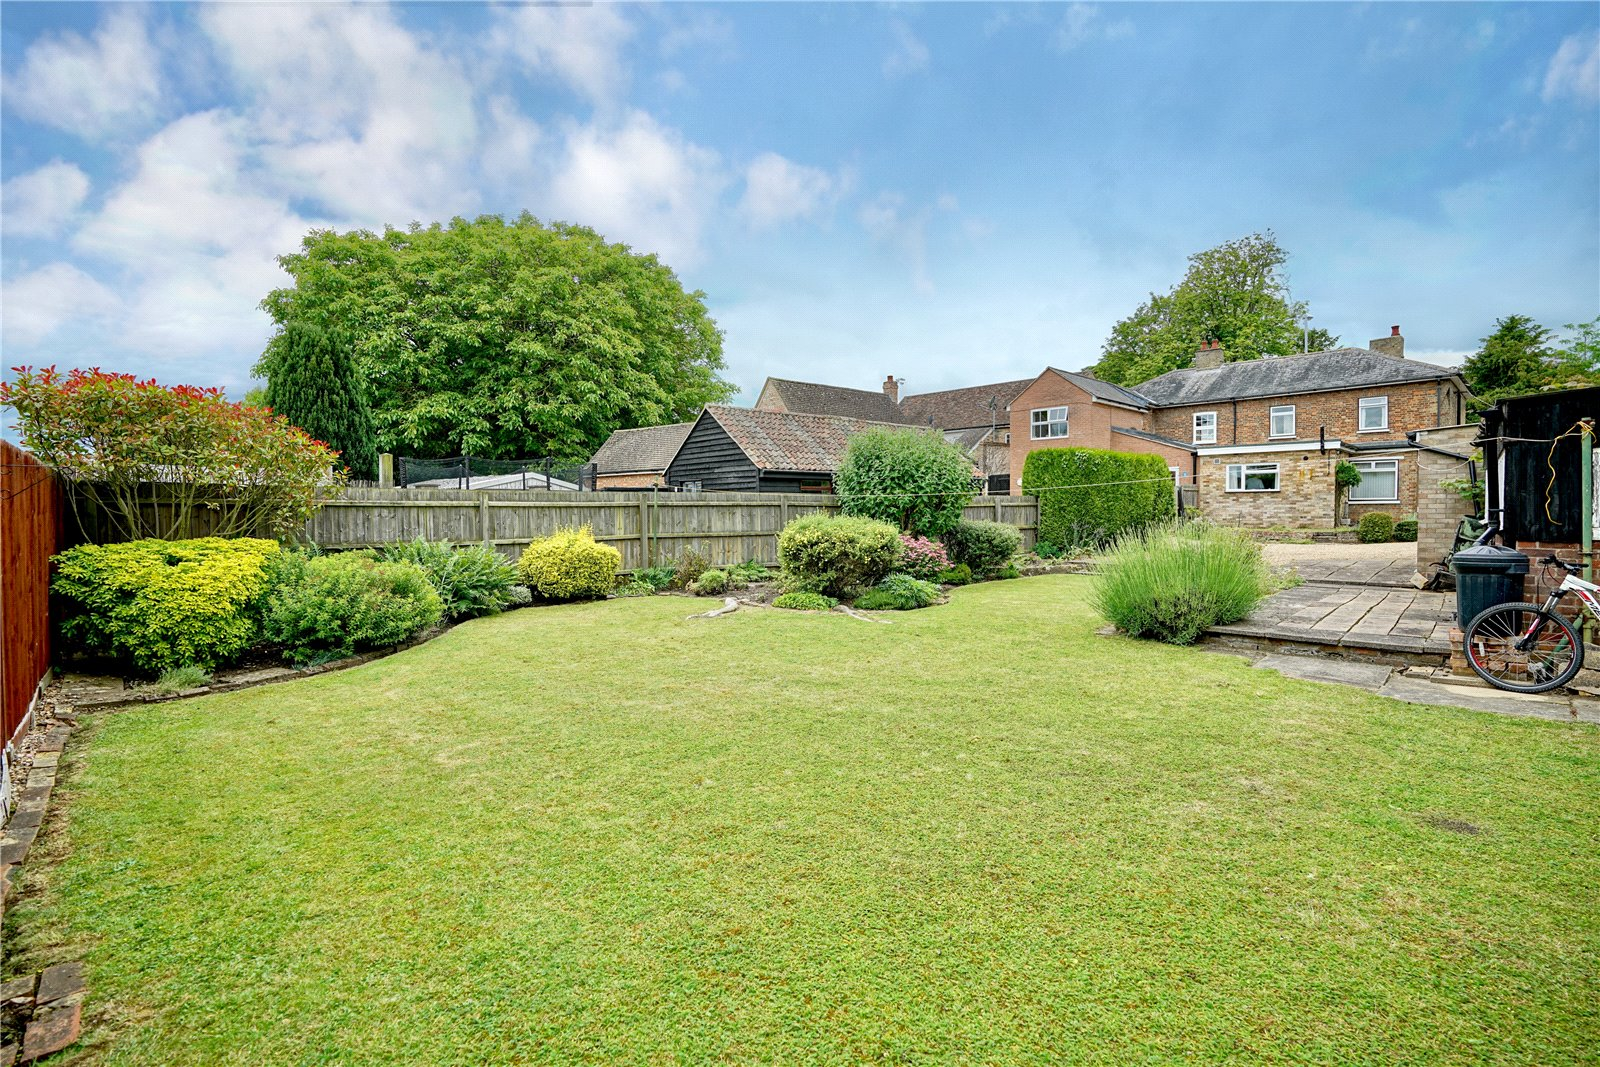 3 bed house for sale in Great North Road, Eaton Socon  - Property Image 10